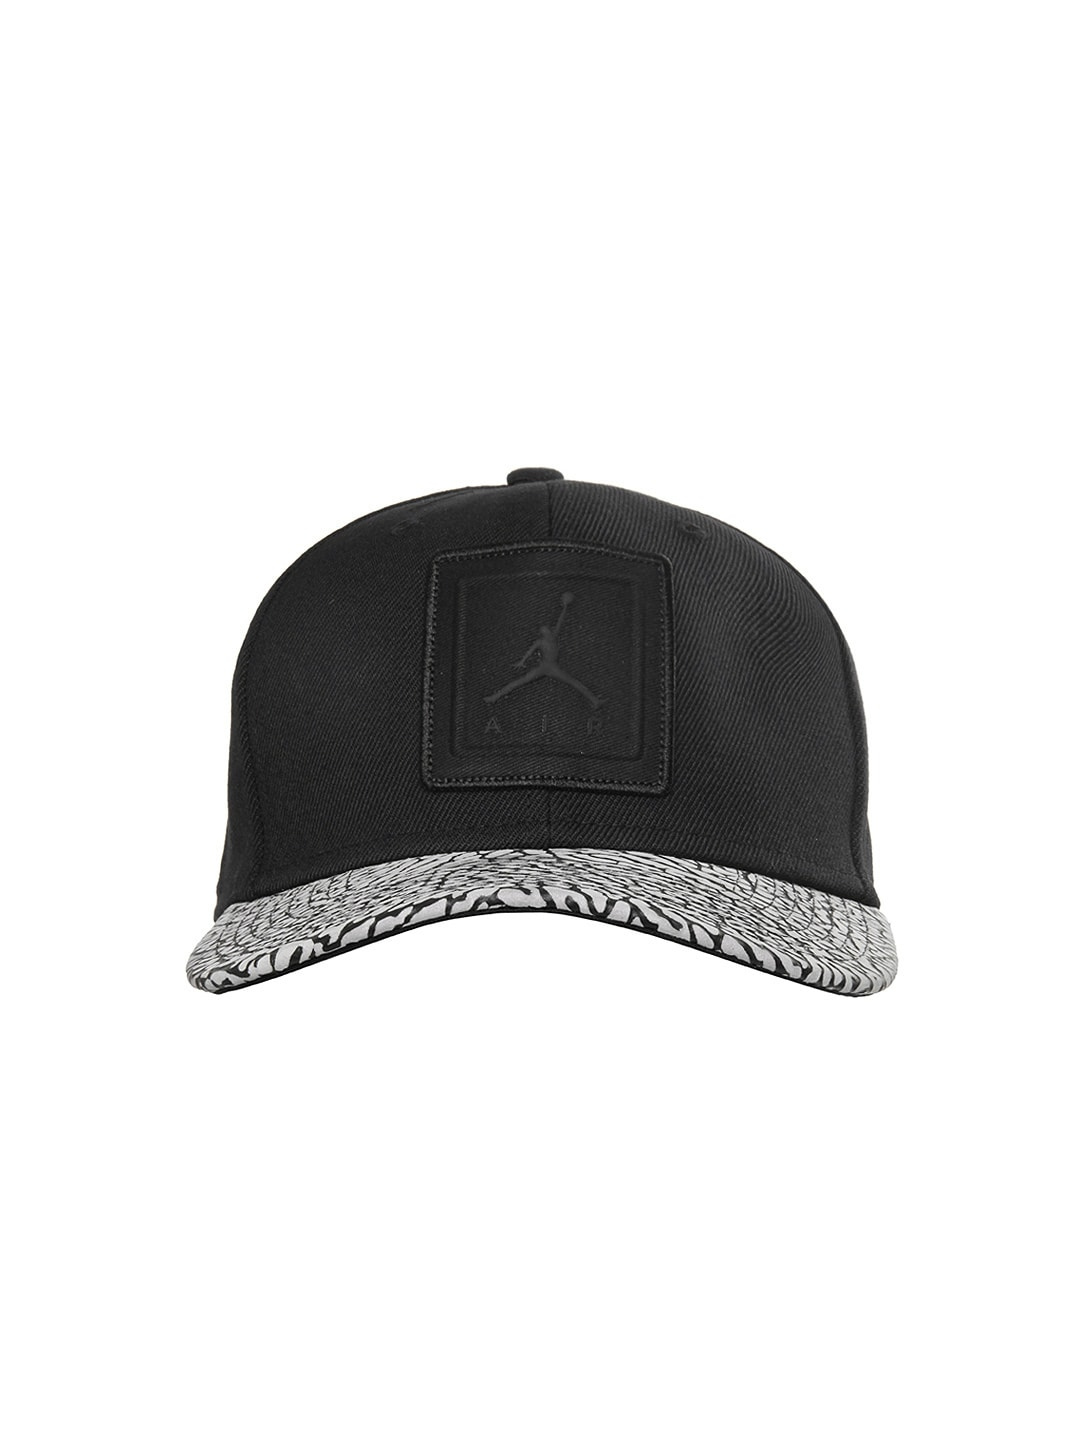 Nike 589016-010 Unisex Black Jordan Jumpman Cap - Best Price in ... 097f15844a4